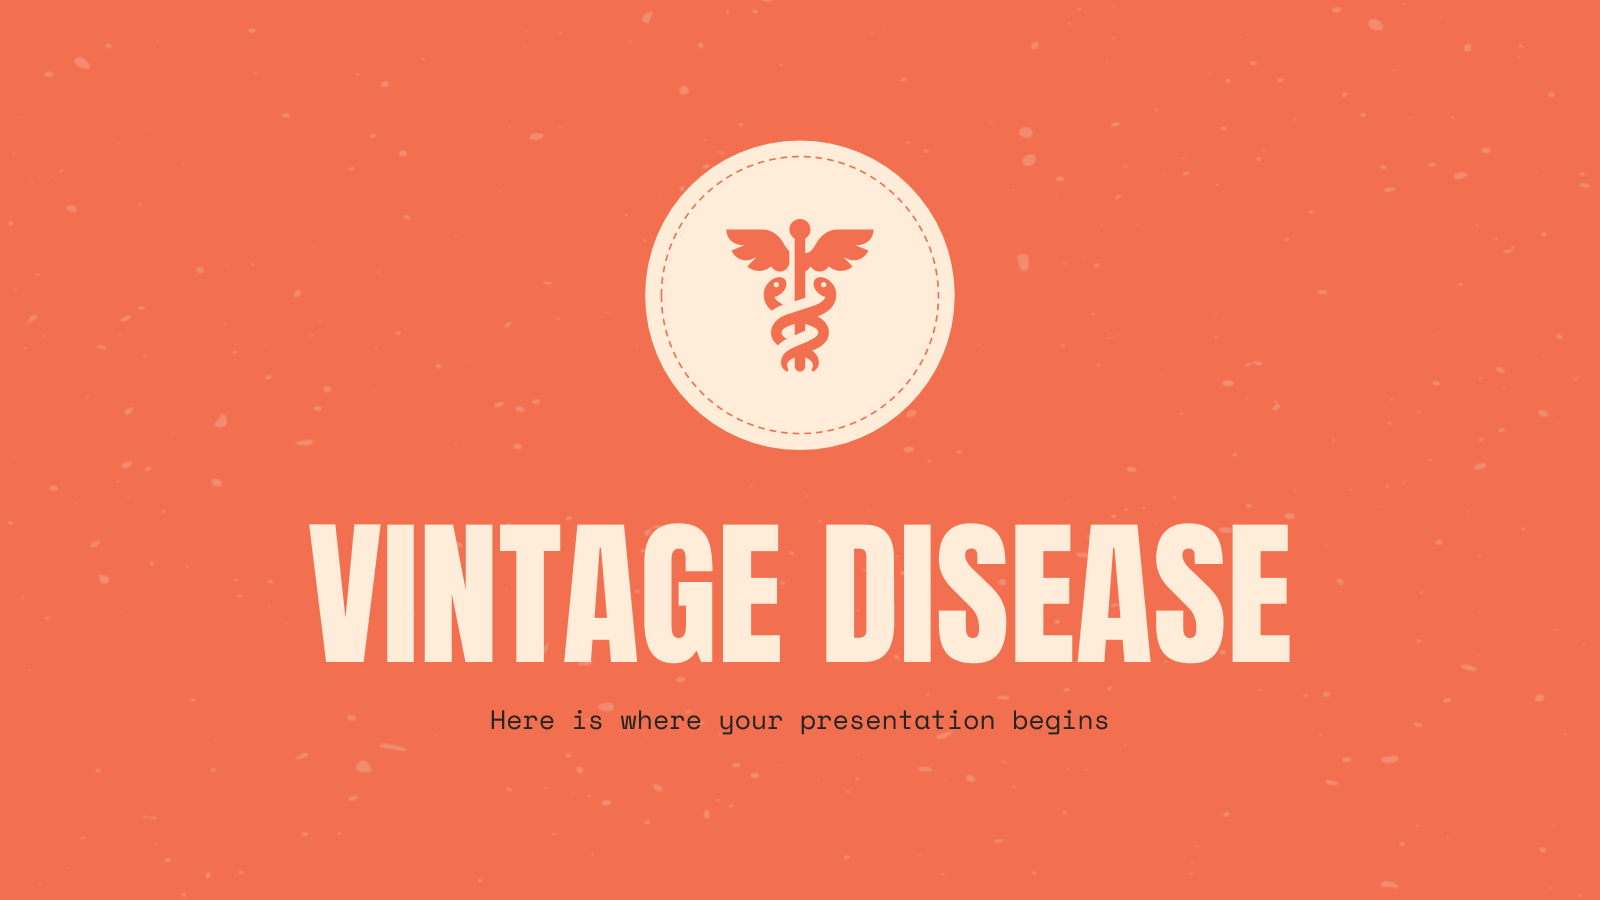 Vintage Disease presentation template